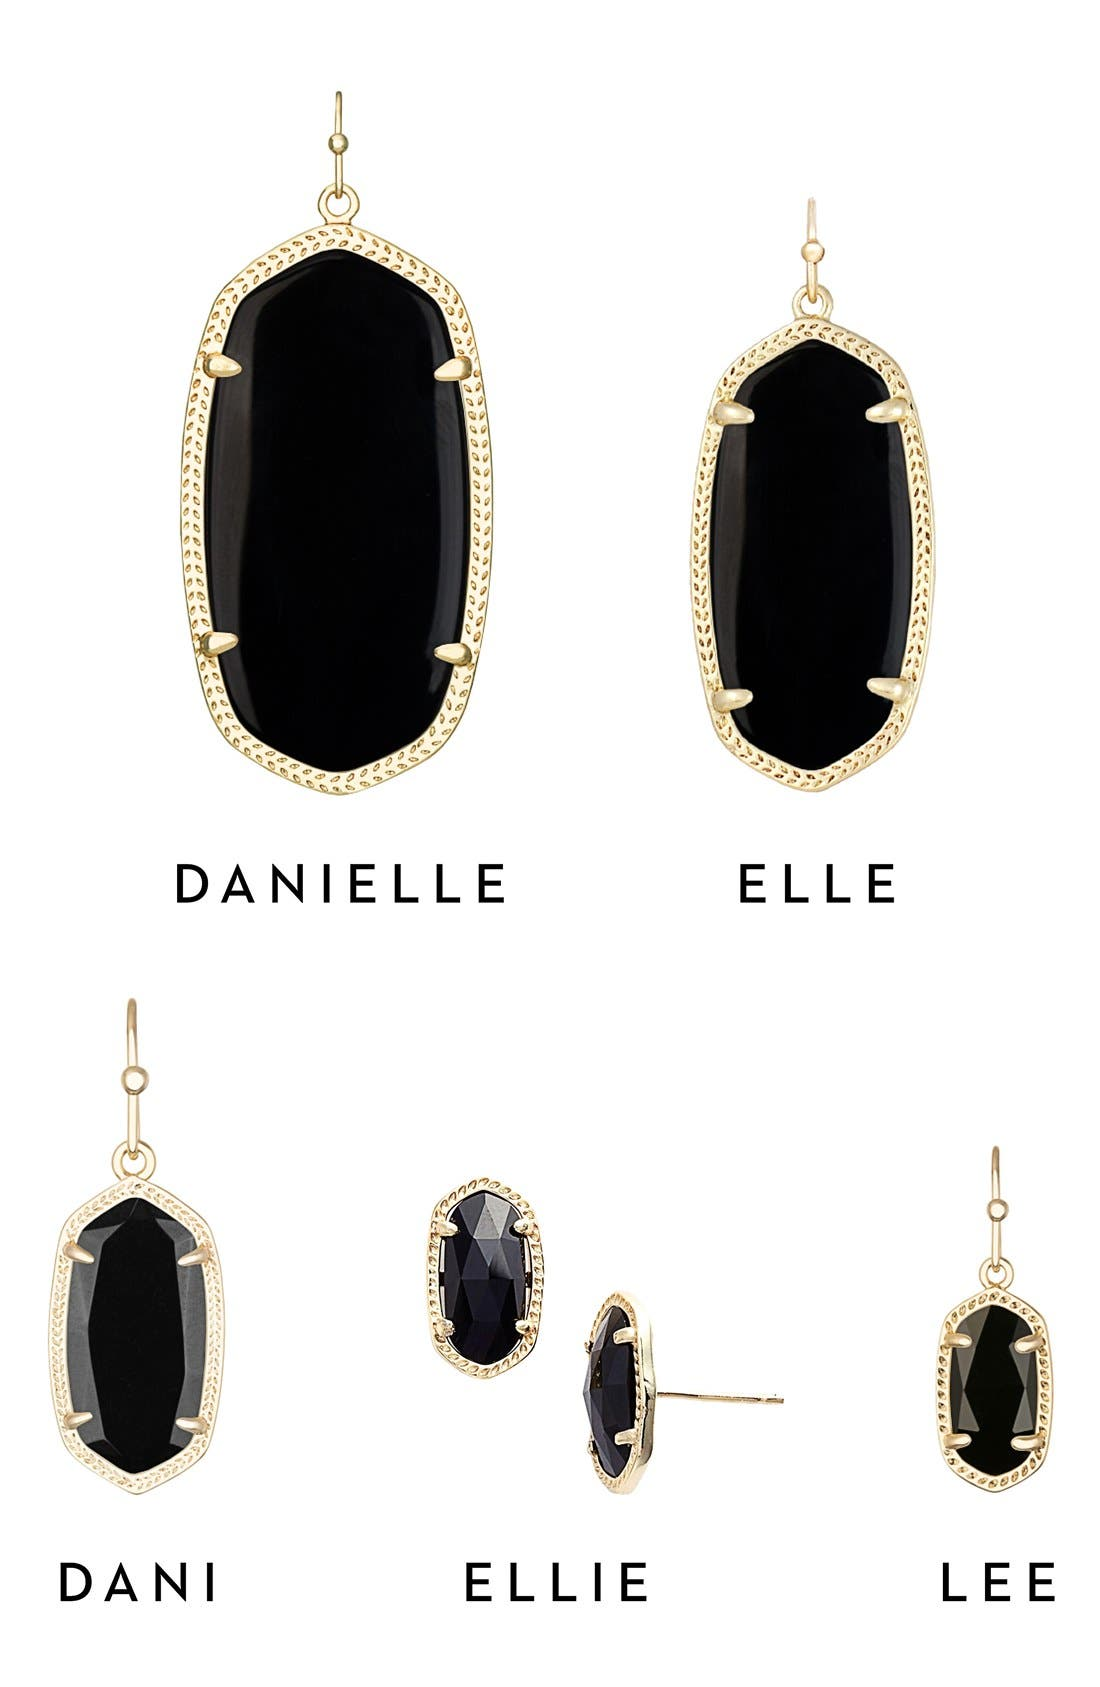 Danielle - Large Oval Statement Earrings,                             Alternate thumbnail 6, color,                             001